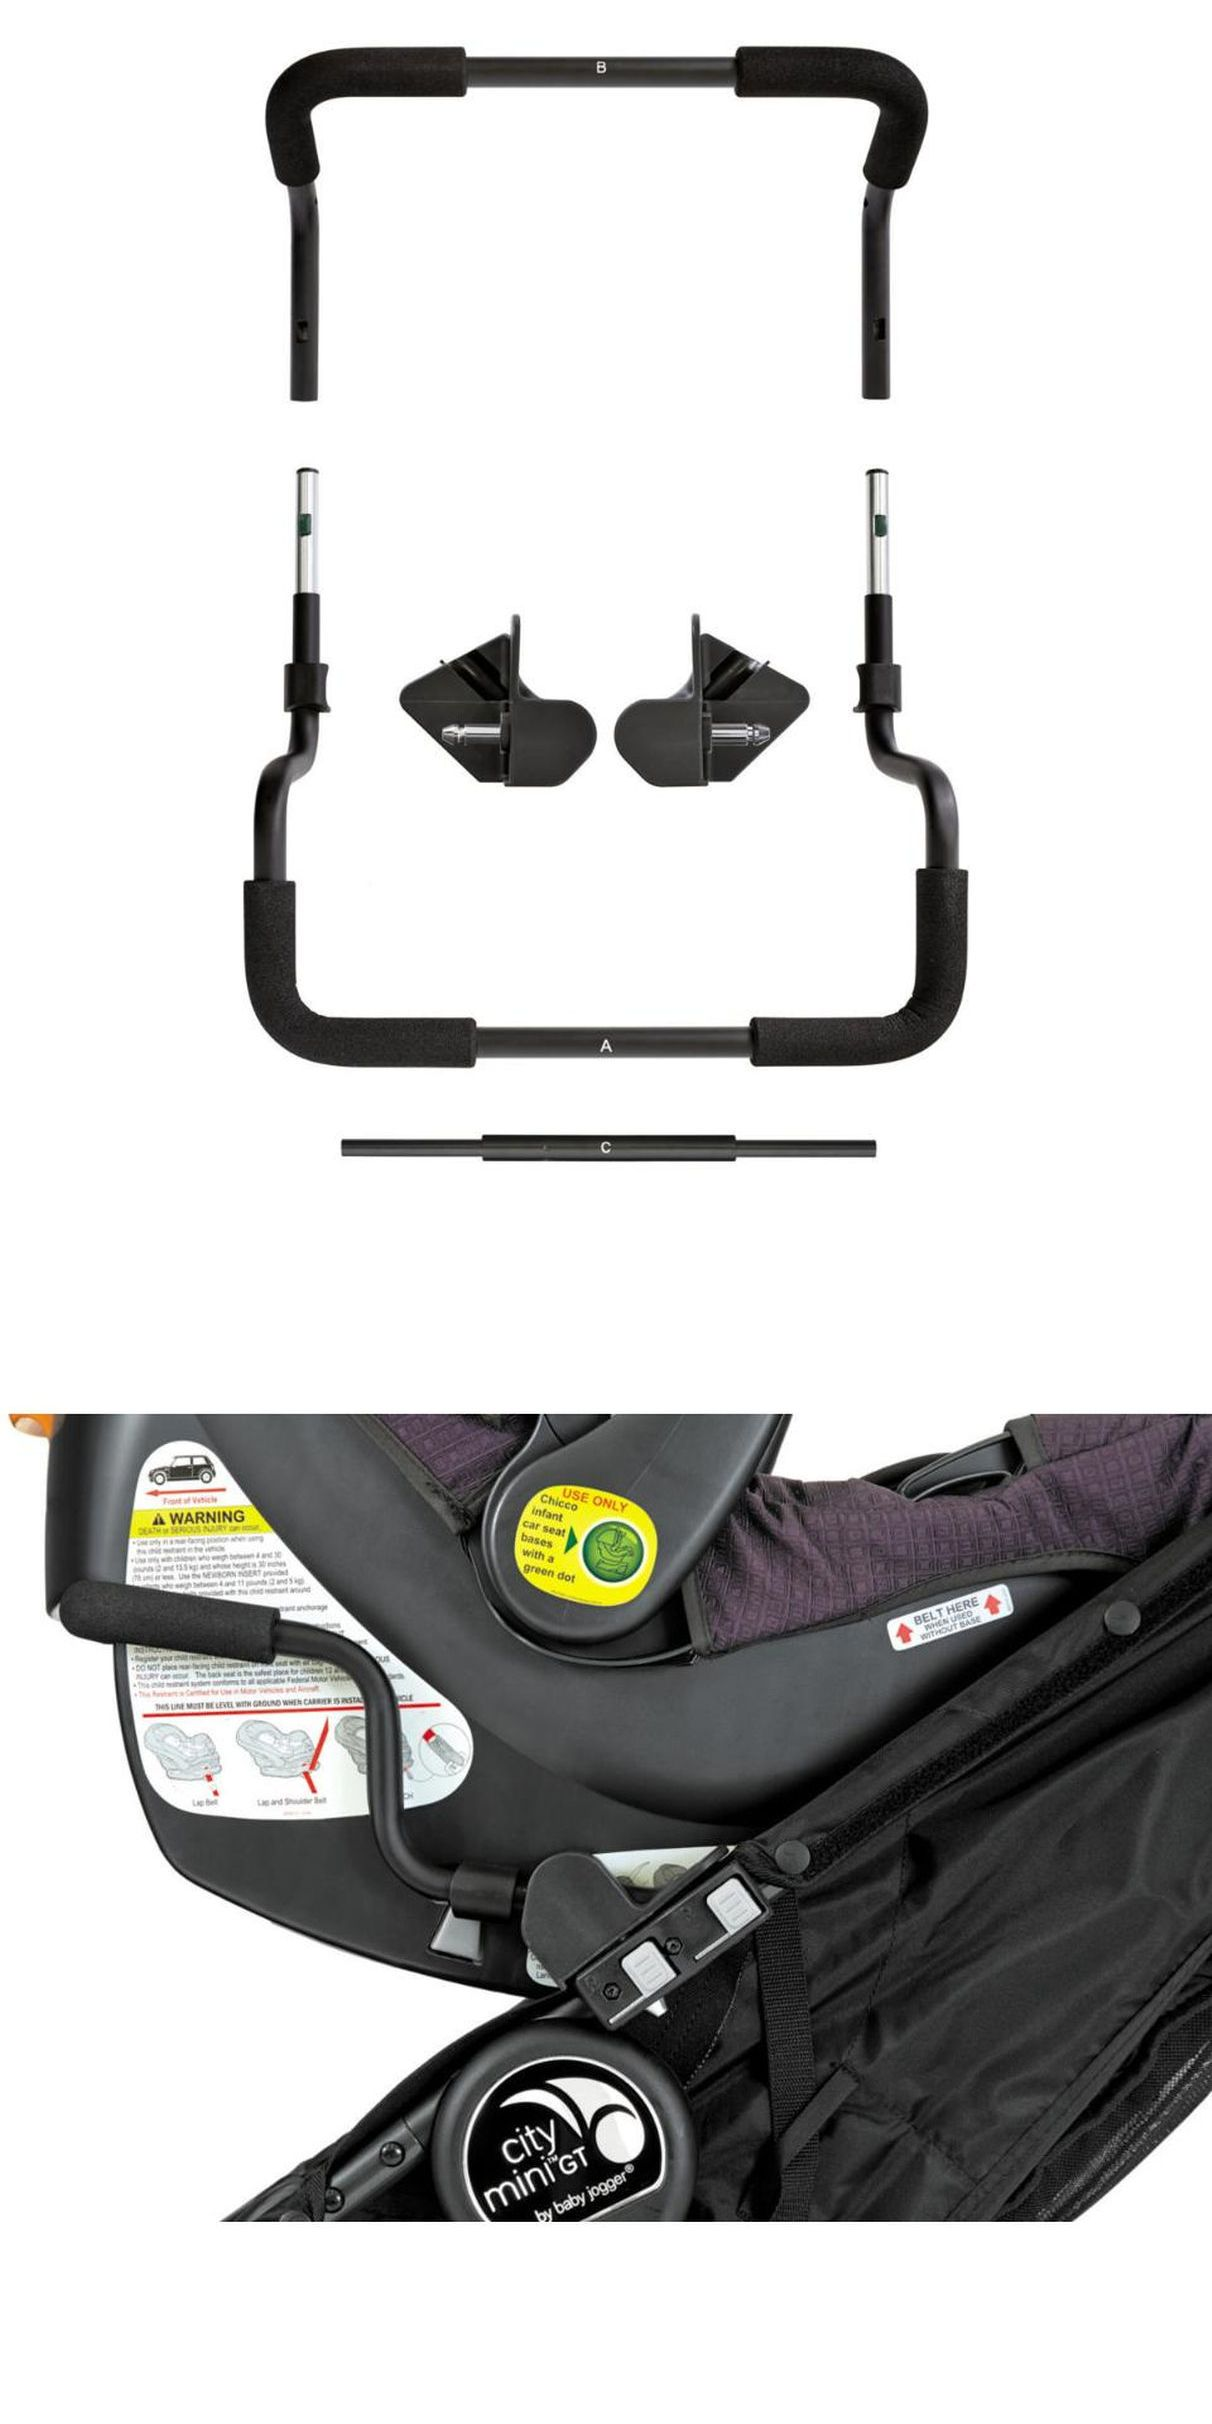 Other Stroller Accessories 180917 Baby Jogger Single Mounting Bracket Car Seat Adapter For Chicco Peg Perego BUY IT NOW ONLY 1388 On EBay